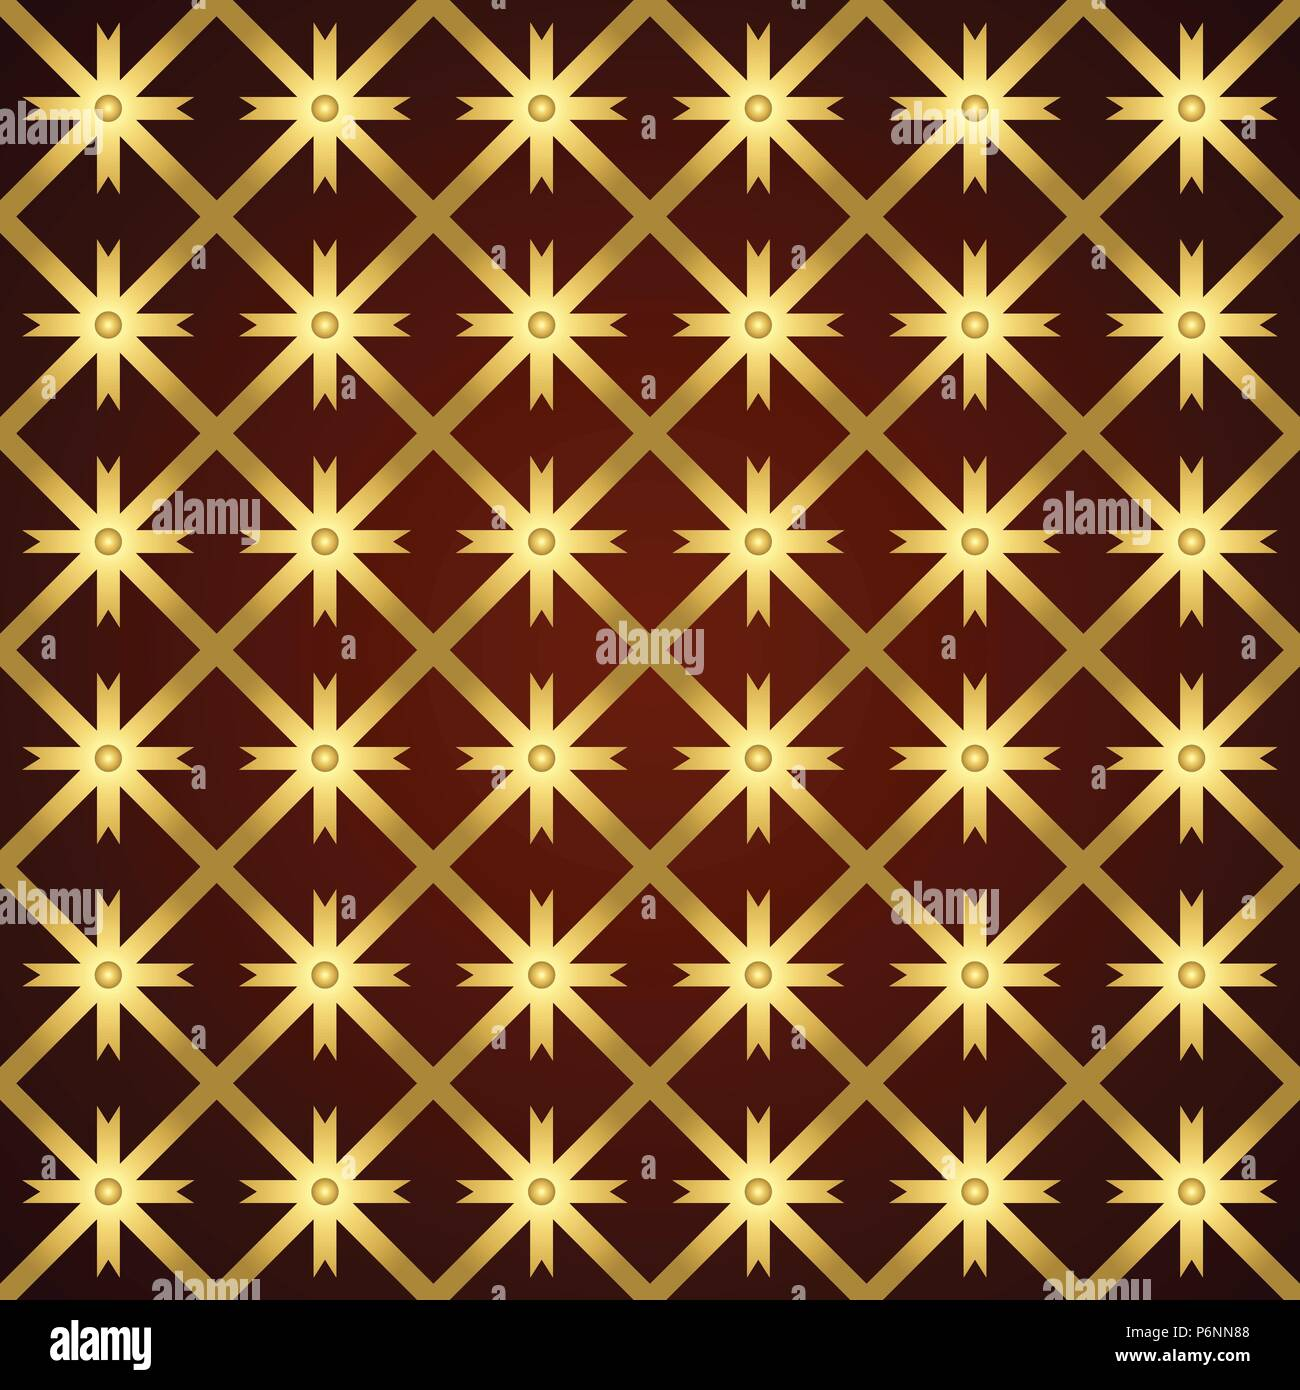 Gold asterisk or crossed line and circle and triangle seamless pattern. Abstract and classic pattern style for design - Stock Vector